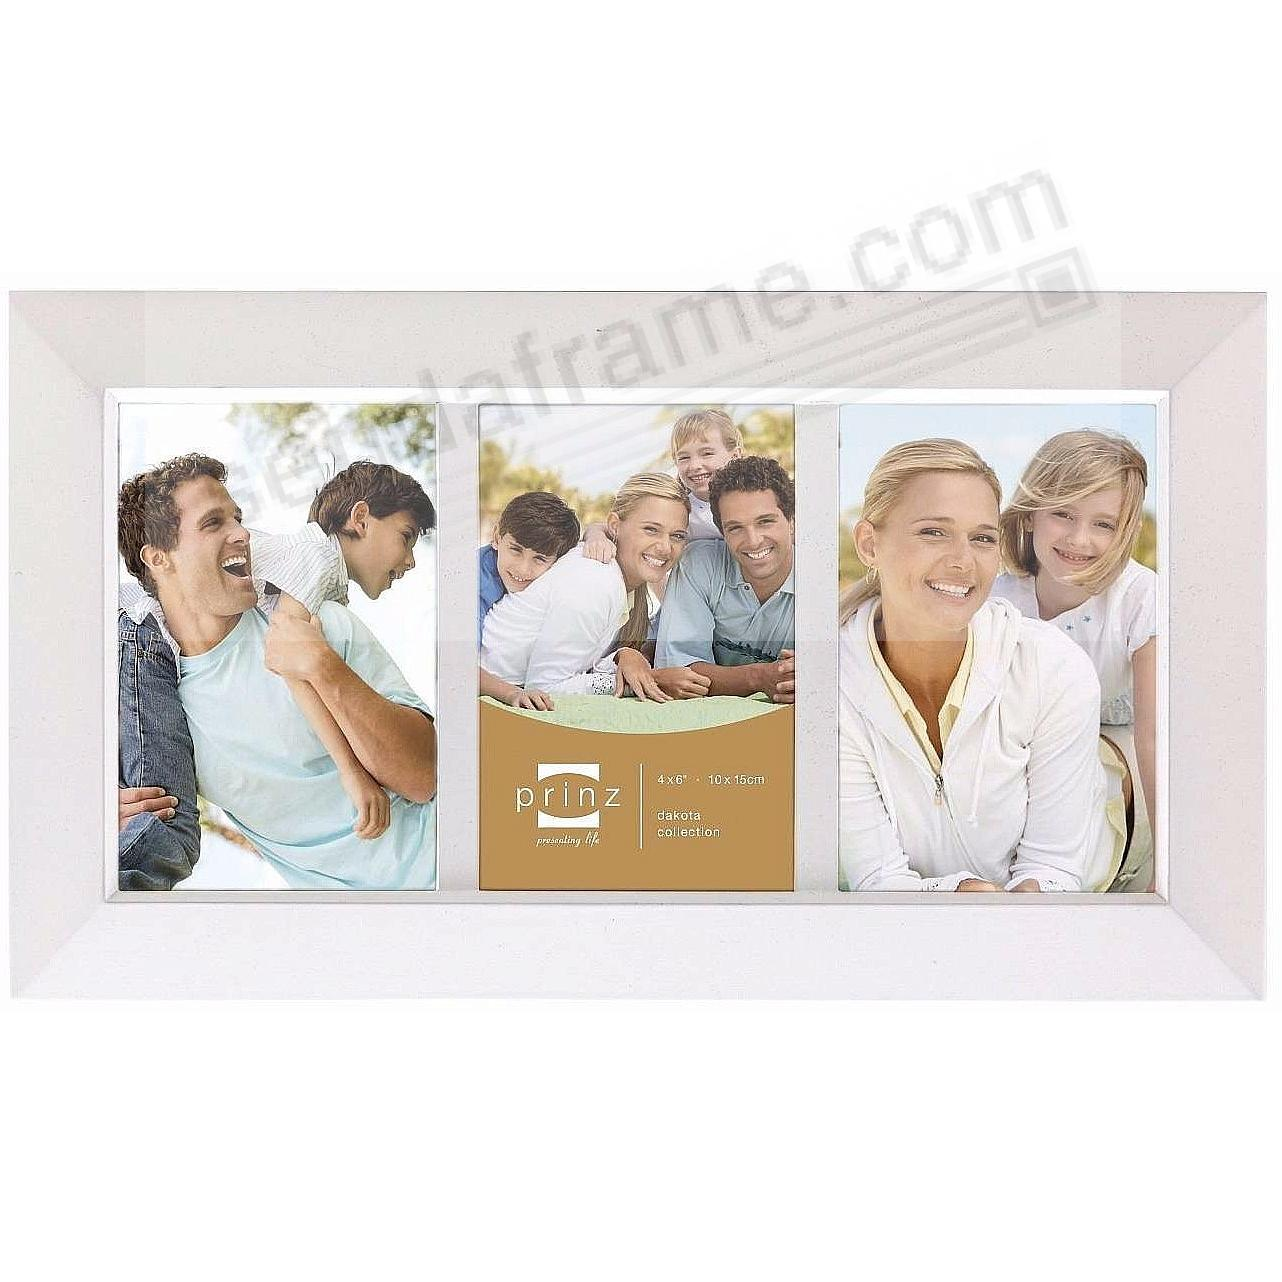 DAKOTA White 3-opening collage frame from Prinz® - Picture Frames ...